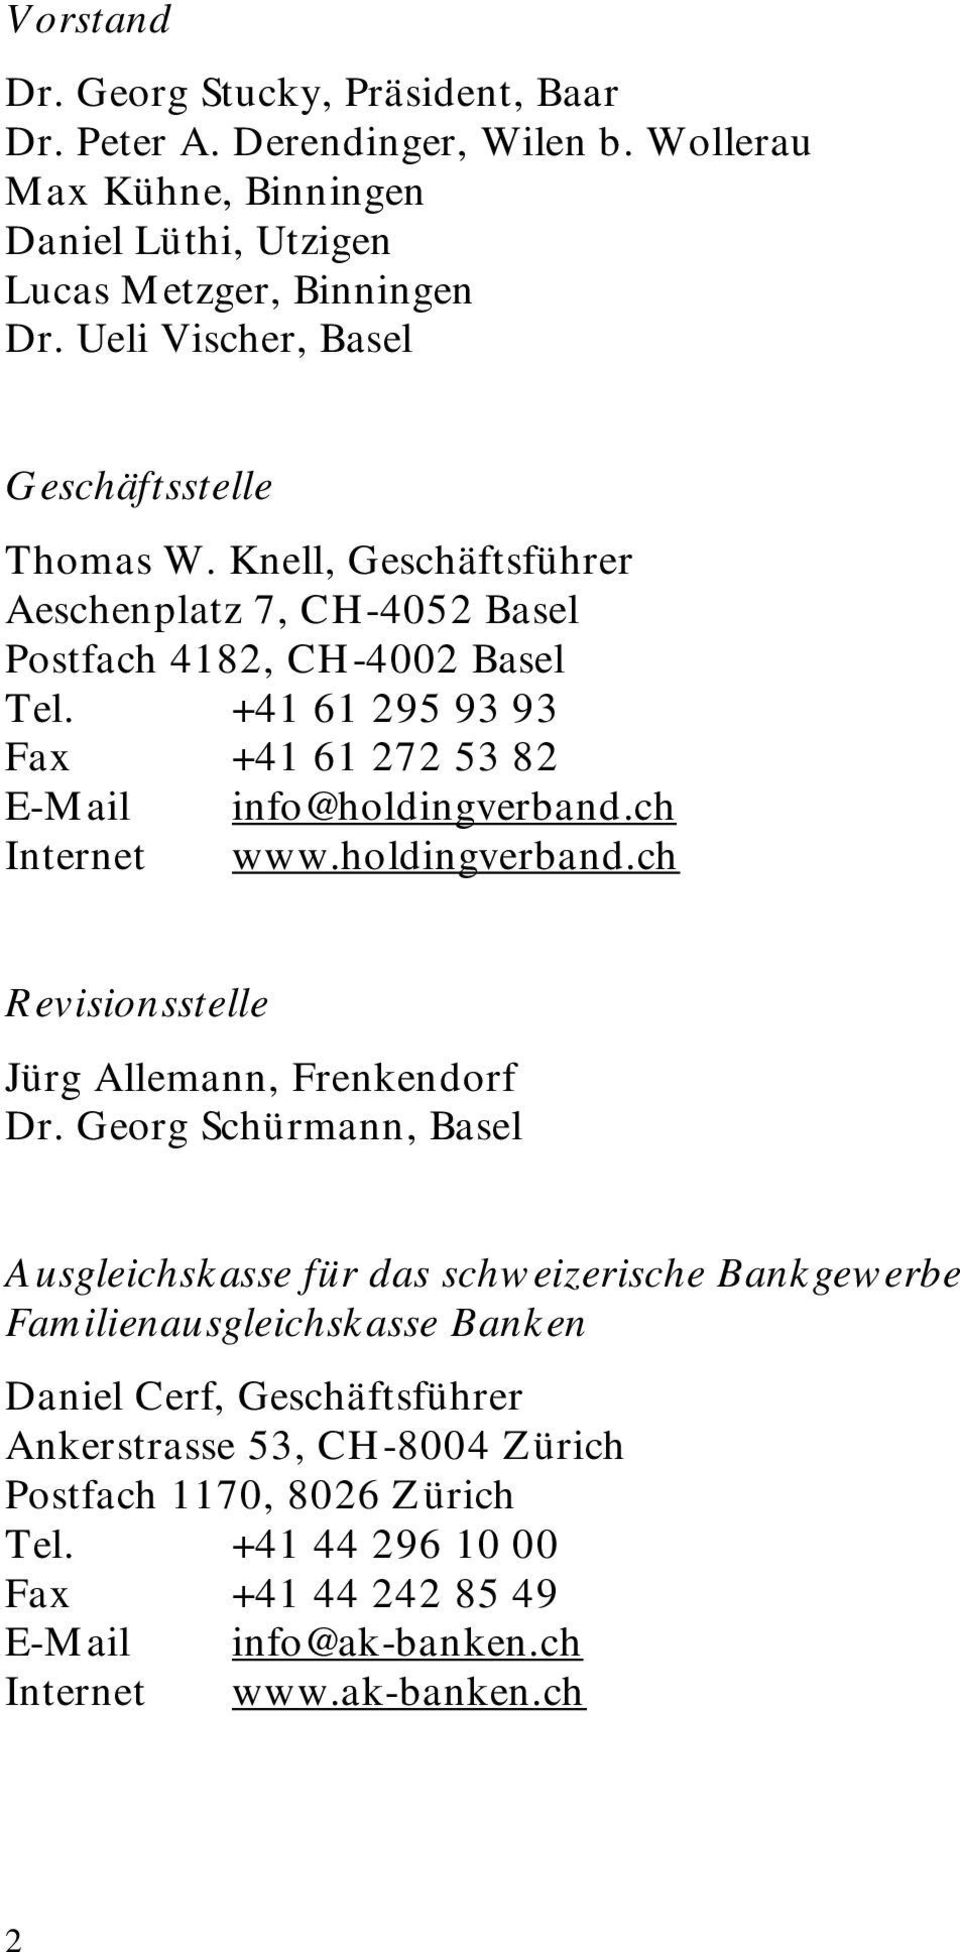 +41 61 295 93 93 Fax +41 61 272 53 82 E-Mail info@holdingverband.ch Internet www.holdingverband.ch Revisionsstelle Jürg Allemann, Frenkendorf Dr.